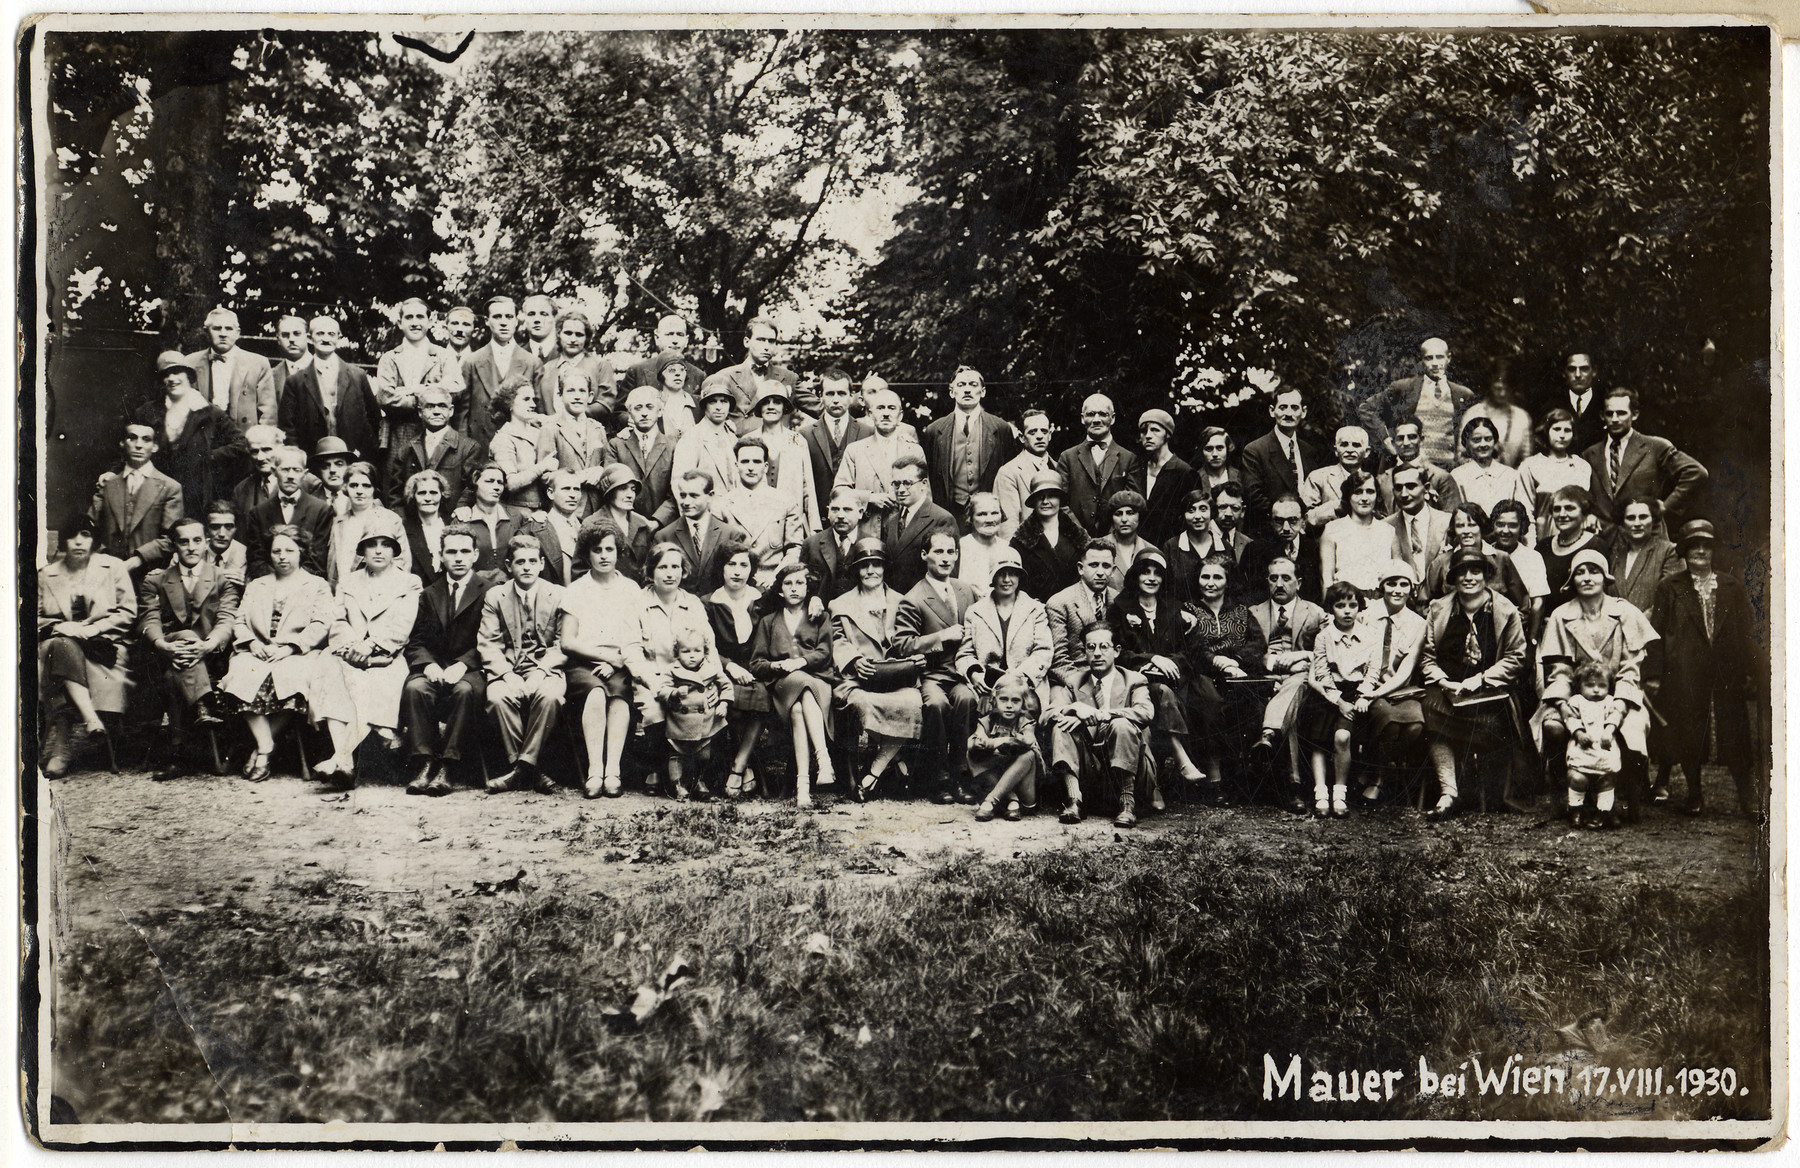 Group portrait of a club gathering.  Among those pictured are Hilda Wiener (seated in front, eighth from the left), her daughter Nelly (standing in front of her), Richard Wiener (second/third row, behind Hilda and wearing light colored shirt), and Leo Weiss (?) (standing second to the right of Richard).